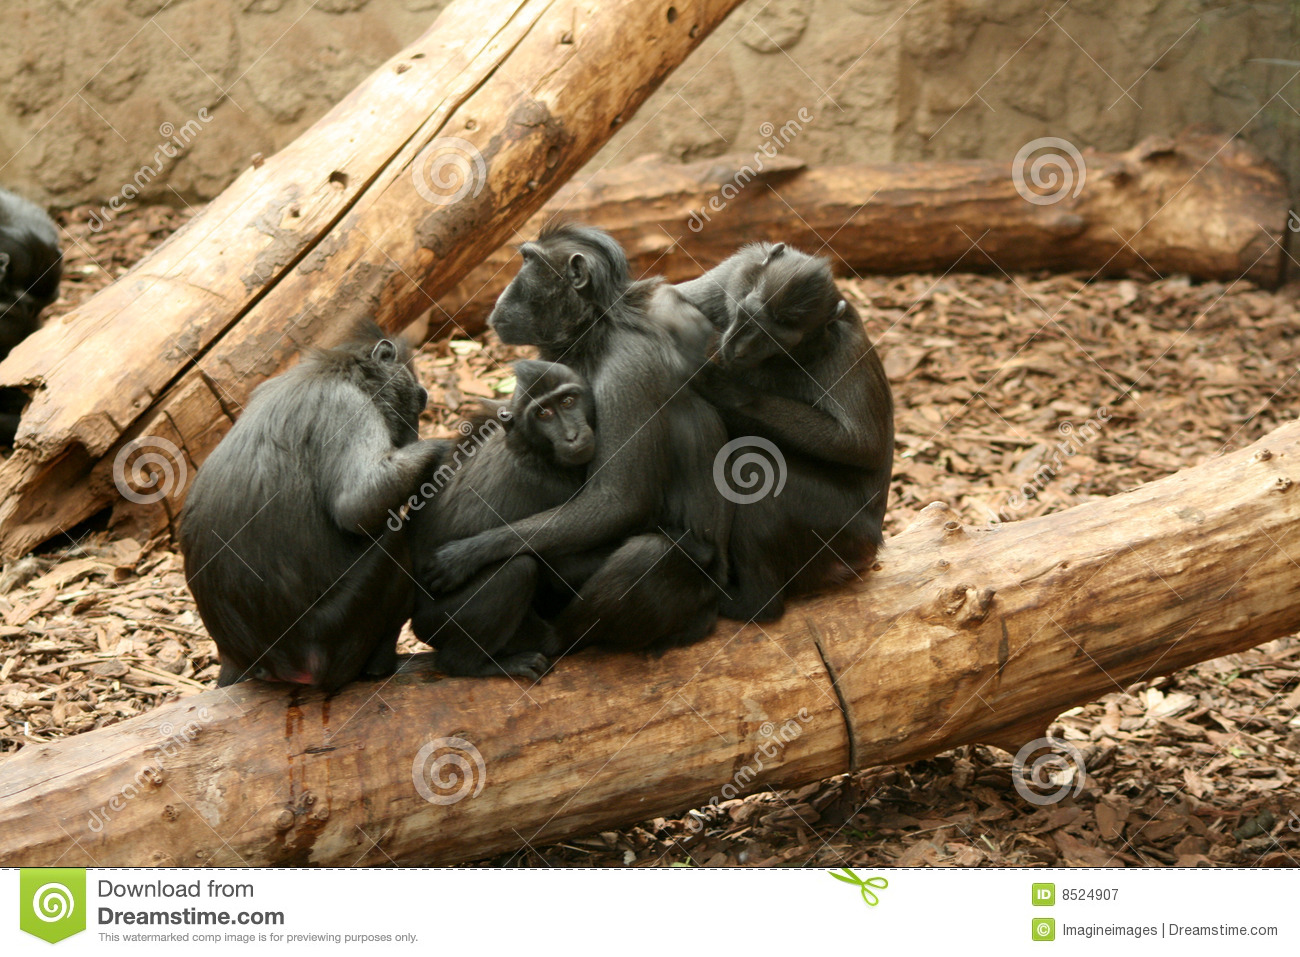 Crested Black Macaque clipart #9, Download drawings